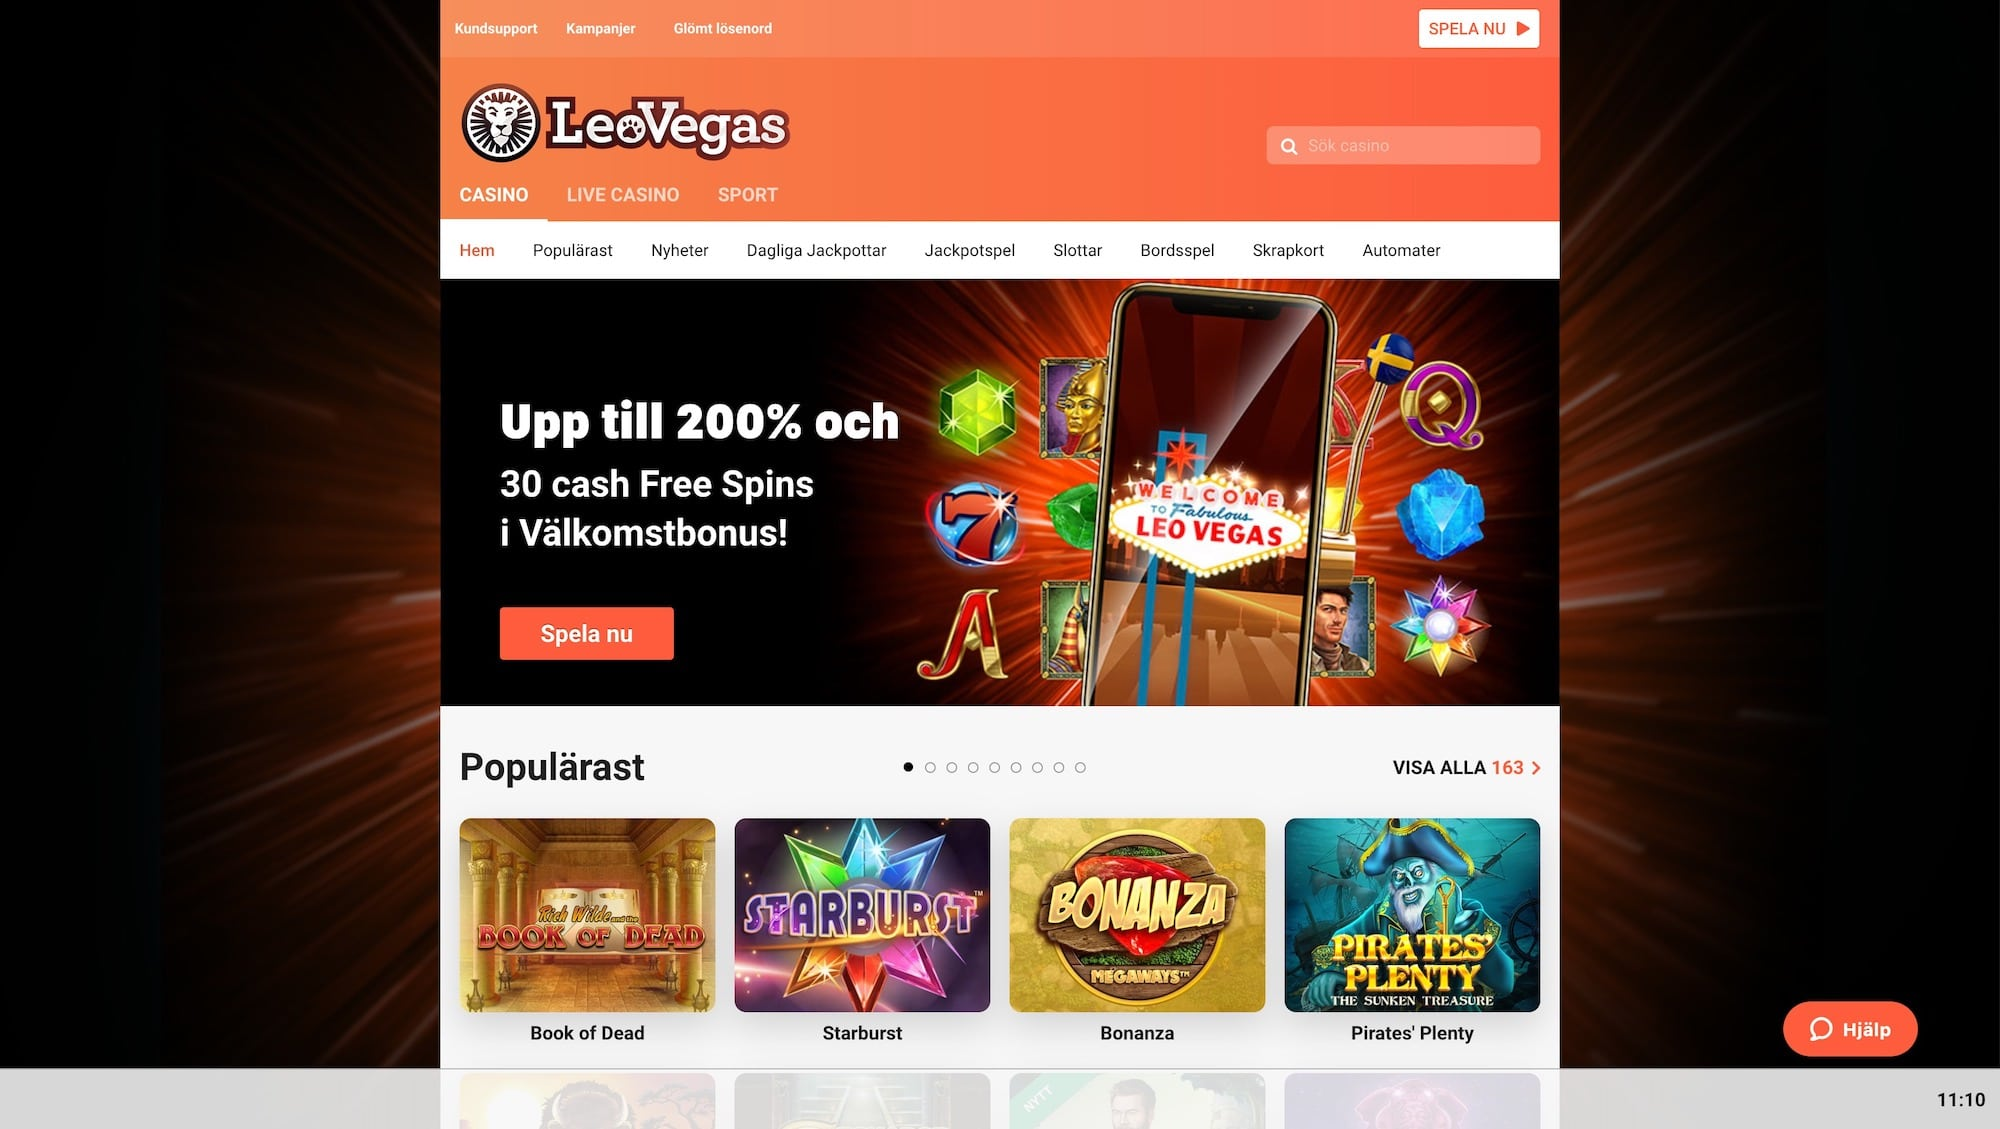 Kryptovaluta casinospel Pokerstars - 58383